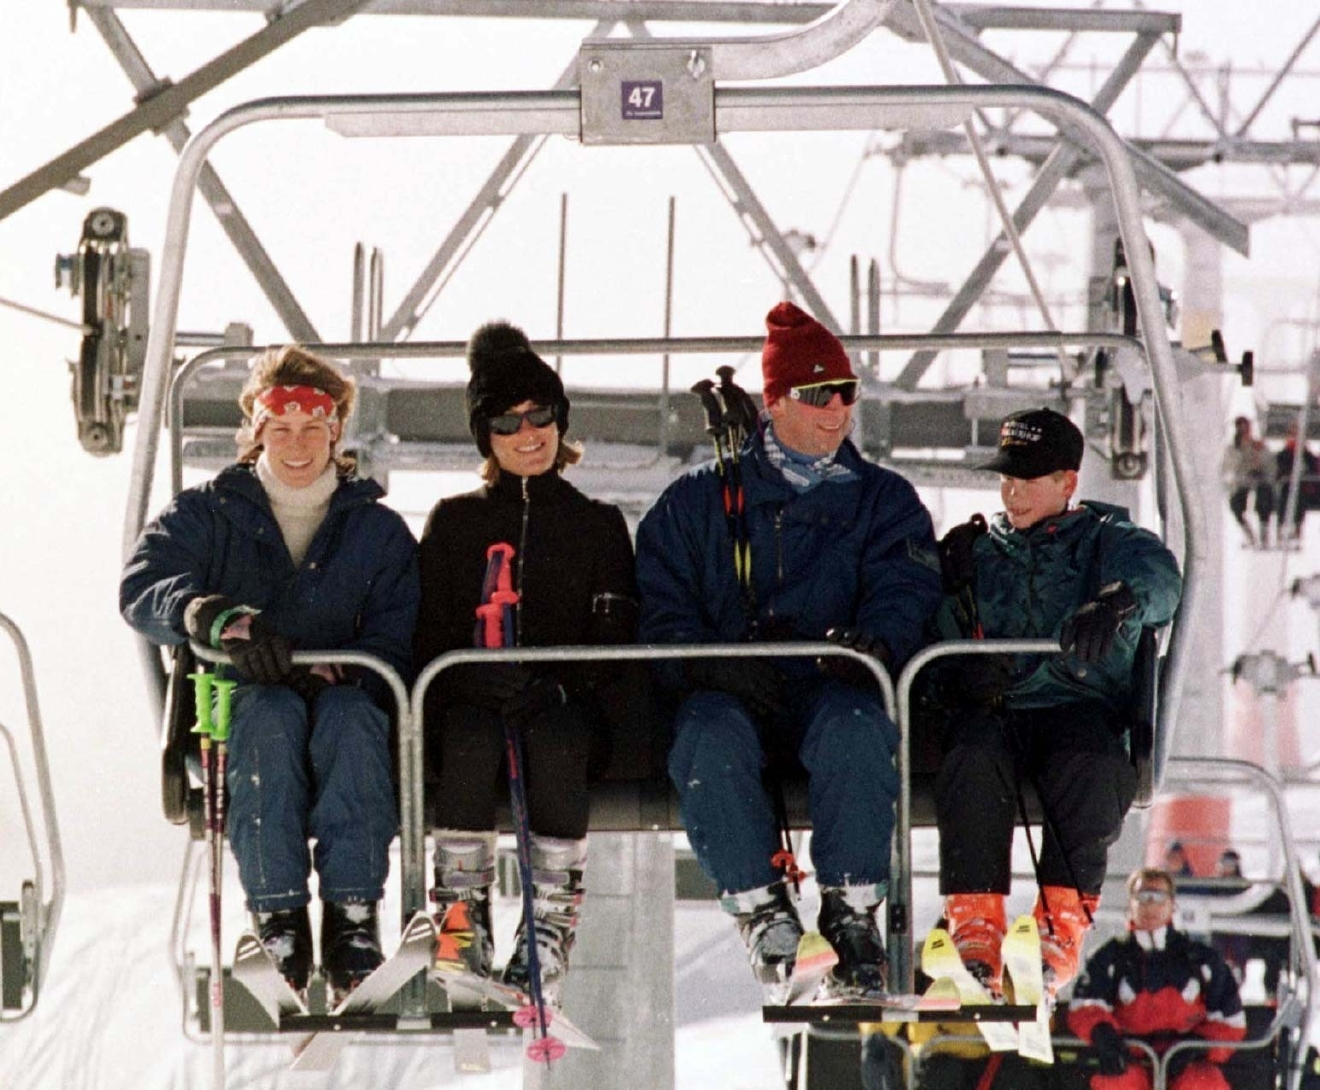 "FILE - A Jan. 1, 1997 file photo of Britain's Prince Charles, 2nd right, with his younger son Prince Harry, right, joined in a ski lift by Santa Sebag Montefiore, with her sister, and Prince Charles' goddaughter, Tara Palmer-Tomkinson, on the way up the Gotschnabahn ski runs above Klosters, Switzerland. Palmer-Tomkinson,has been found dead in her London home. She was 45.  Prince Charles said in a statement Wednesday, Feb.8, 2017, that he and his wife, the Duchess of Cornwall, are ""deeply saddened"" by news of her death. The cause of death was not immediately clear, though she revealed last year that she had been diagnosed with a brain tumor. (John Stillwell/PA via AP, File)"